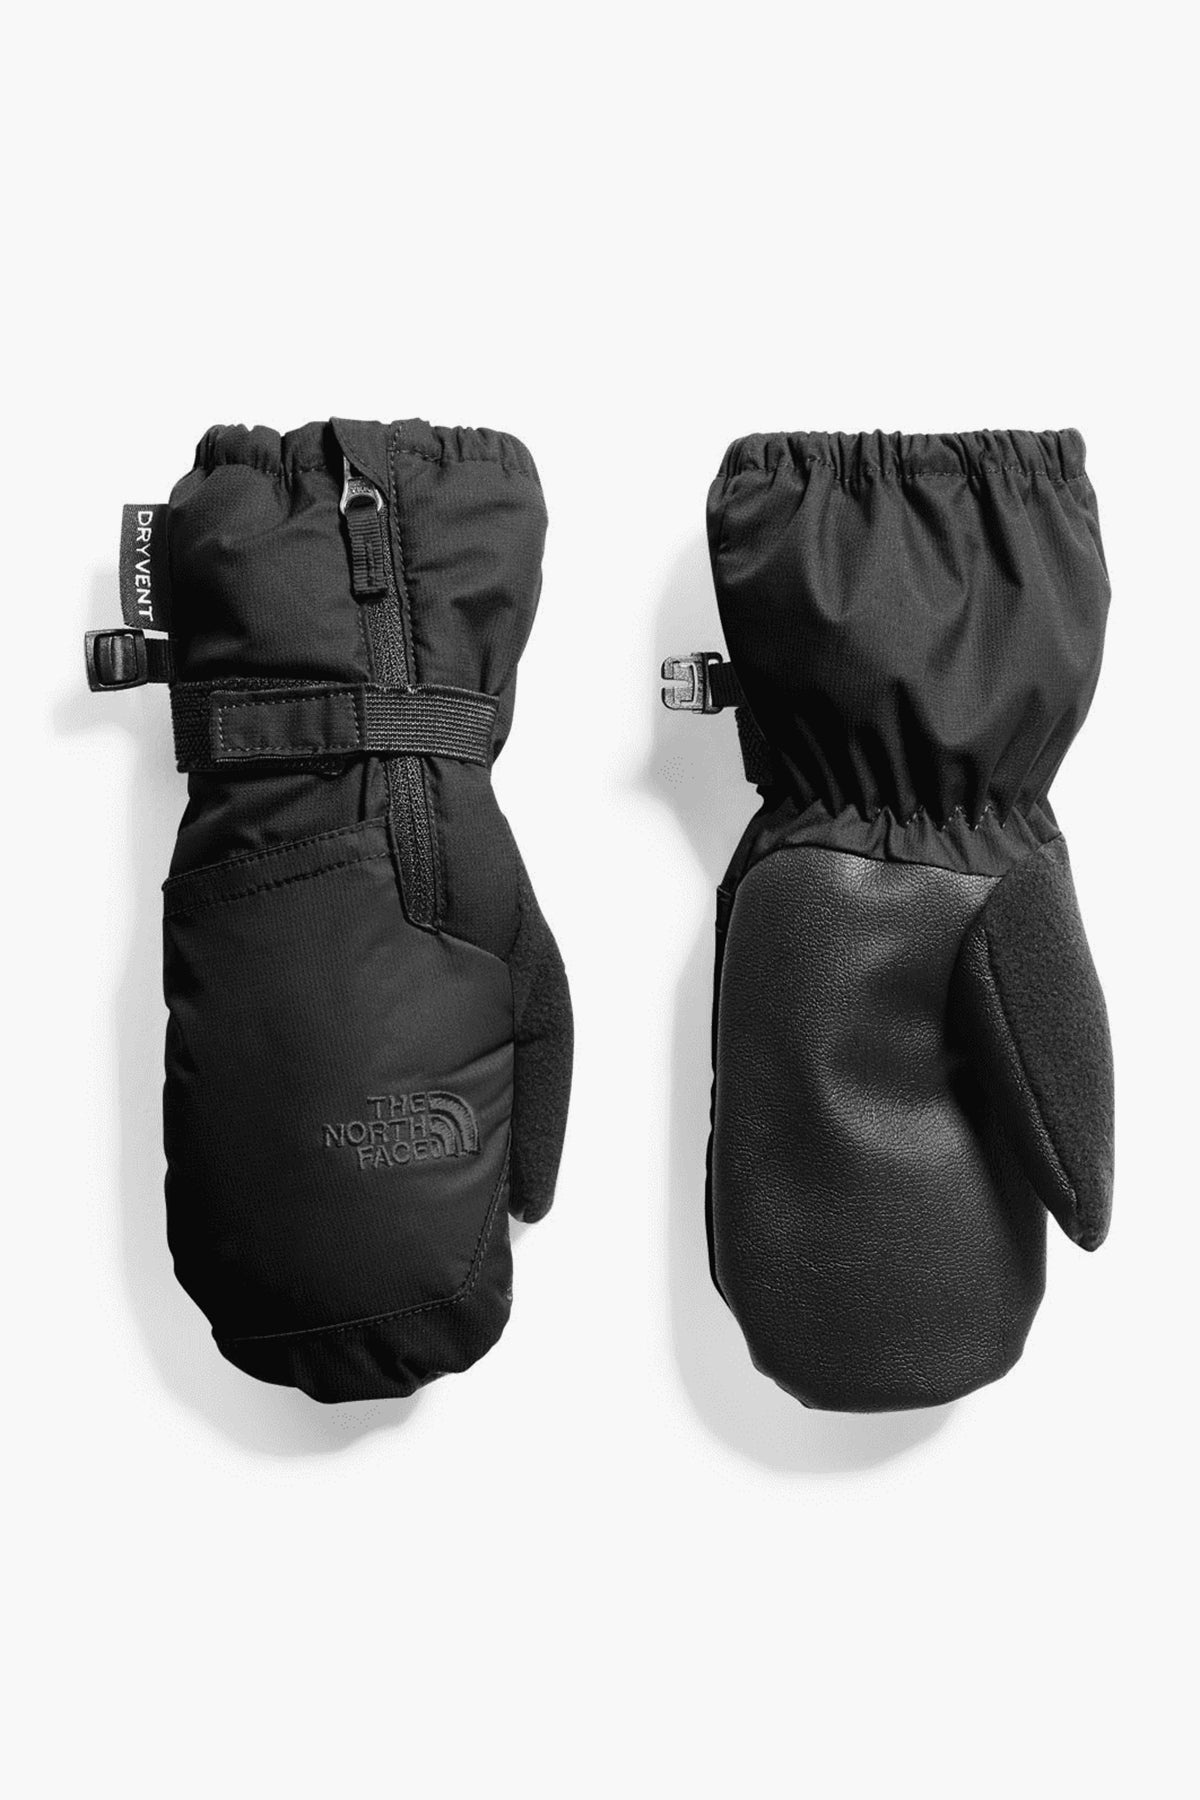 The North Face Toddler Mitt - Black